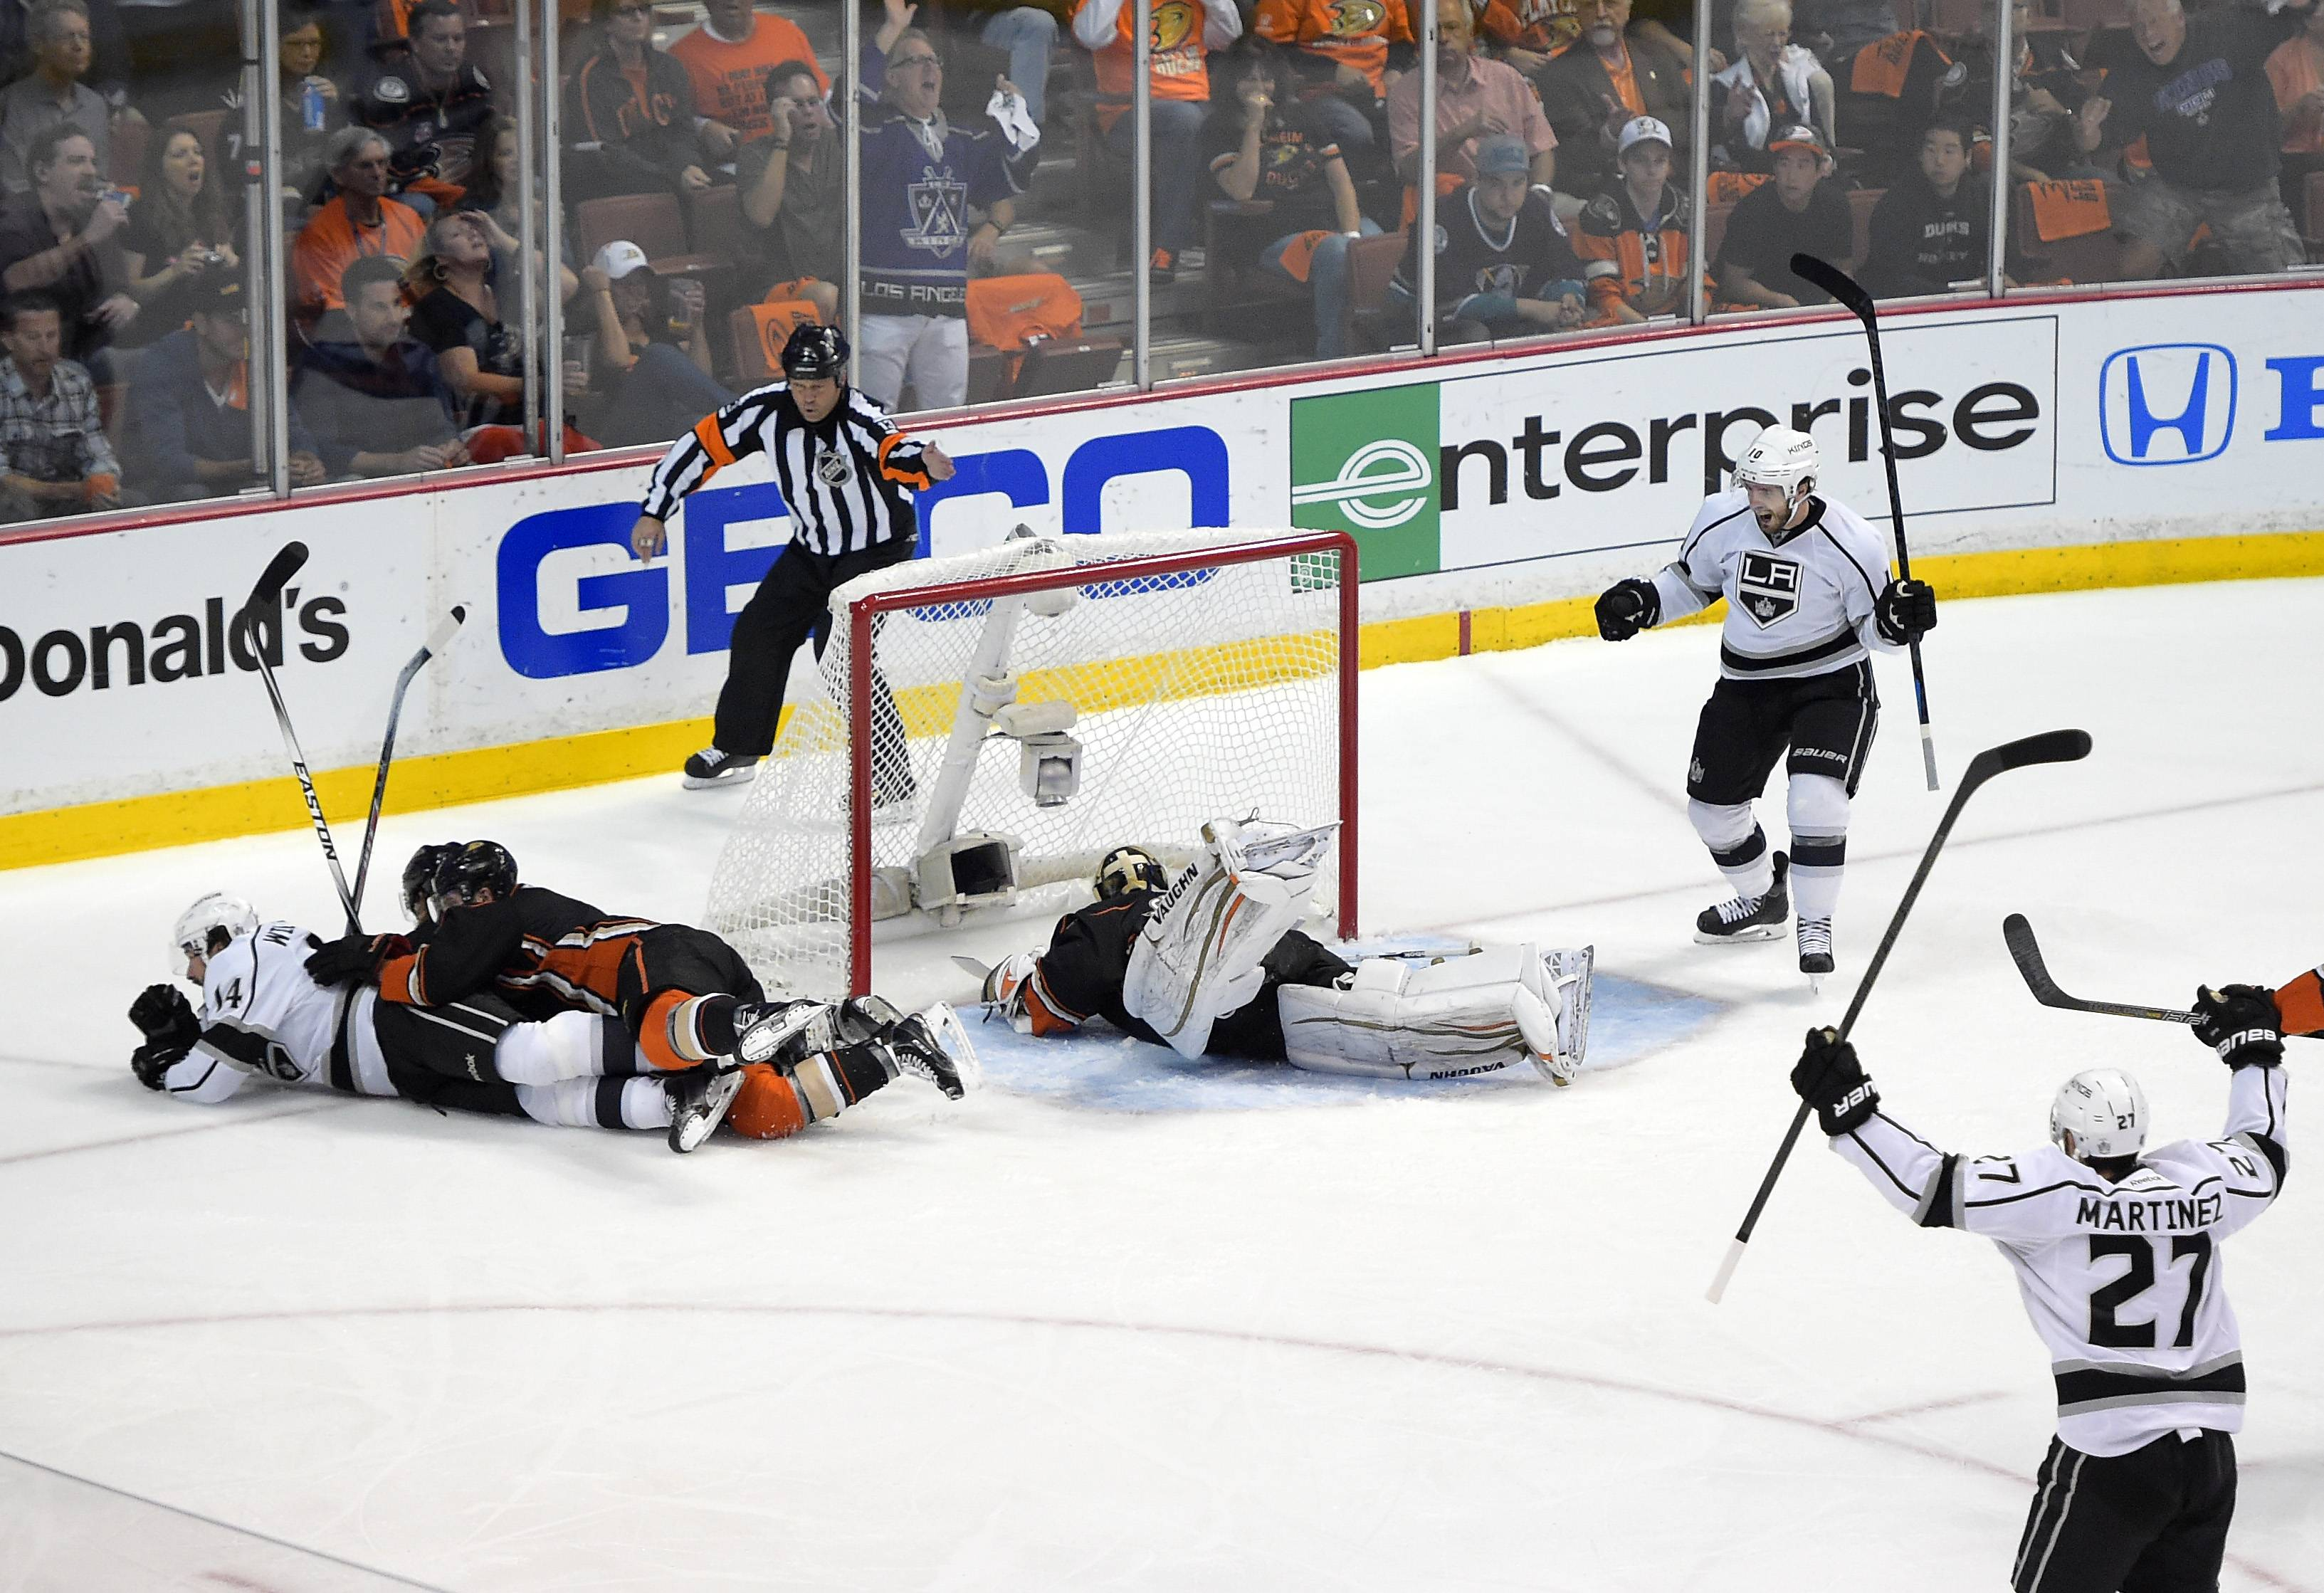 Anaheim Ducks defenseman Cam Fowler, third from left, and defenseman Sami Vatanen, of Finland, second from left, lie on Los Angeles Kings right wing Justin Williams, left, who scored on Anaheim Ducks goalie John Gibson, center, as Kings center Mike Richards, upper right, and defenseman Alec Martinez, lower right, celebrate during the first period in Game 7 of an NHL hockey second-round Stanley Cup playoff series, Friday, May 16, 2014, in Anaheim, Calif.